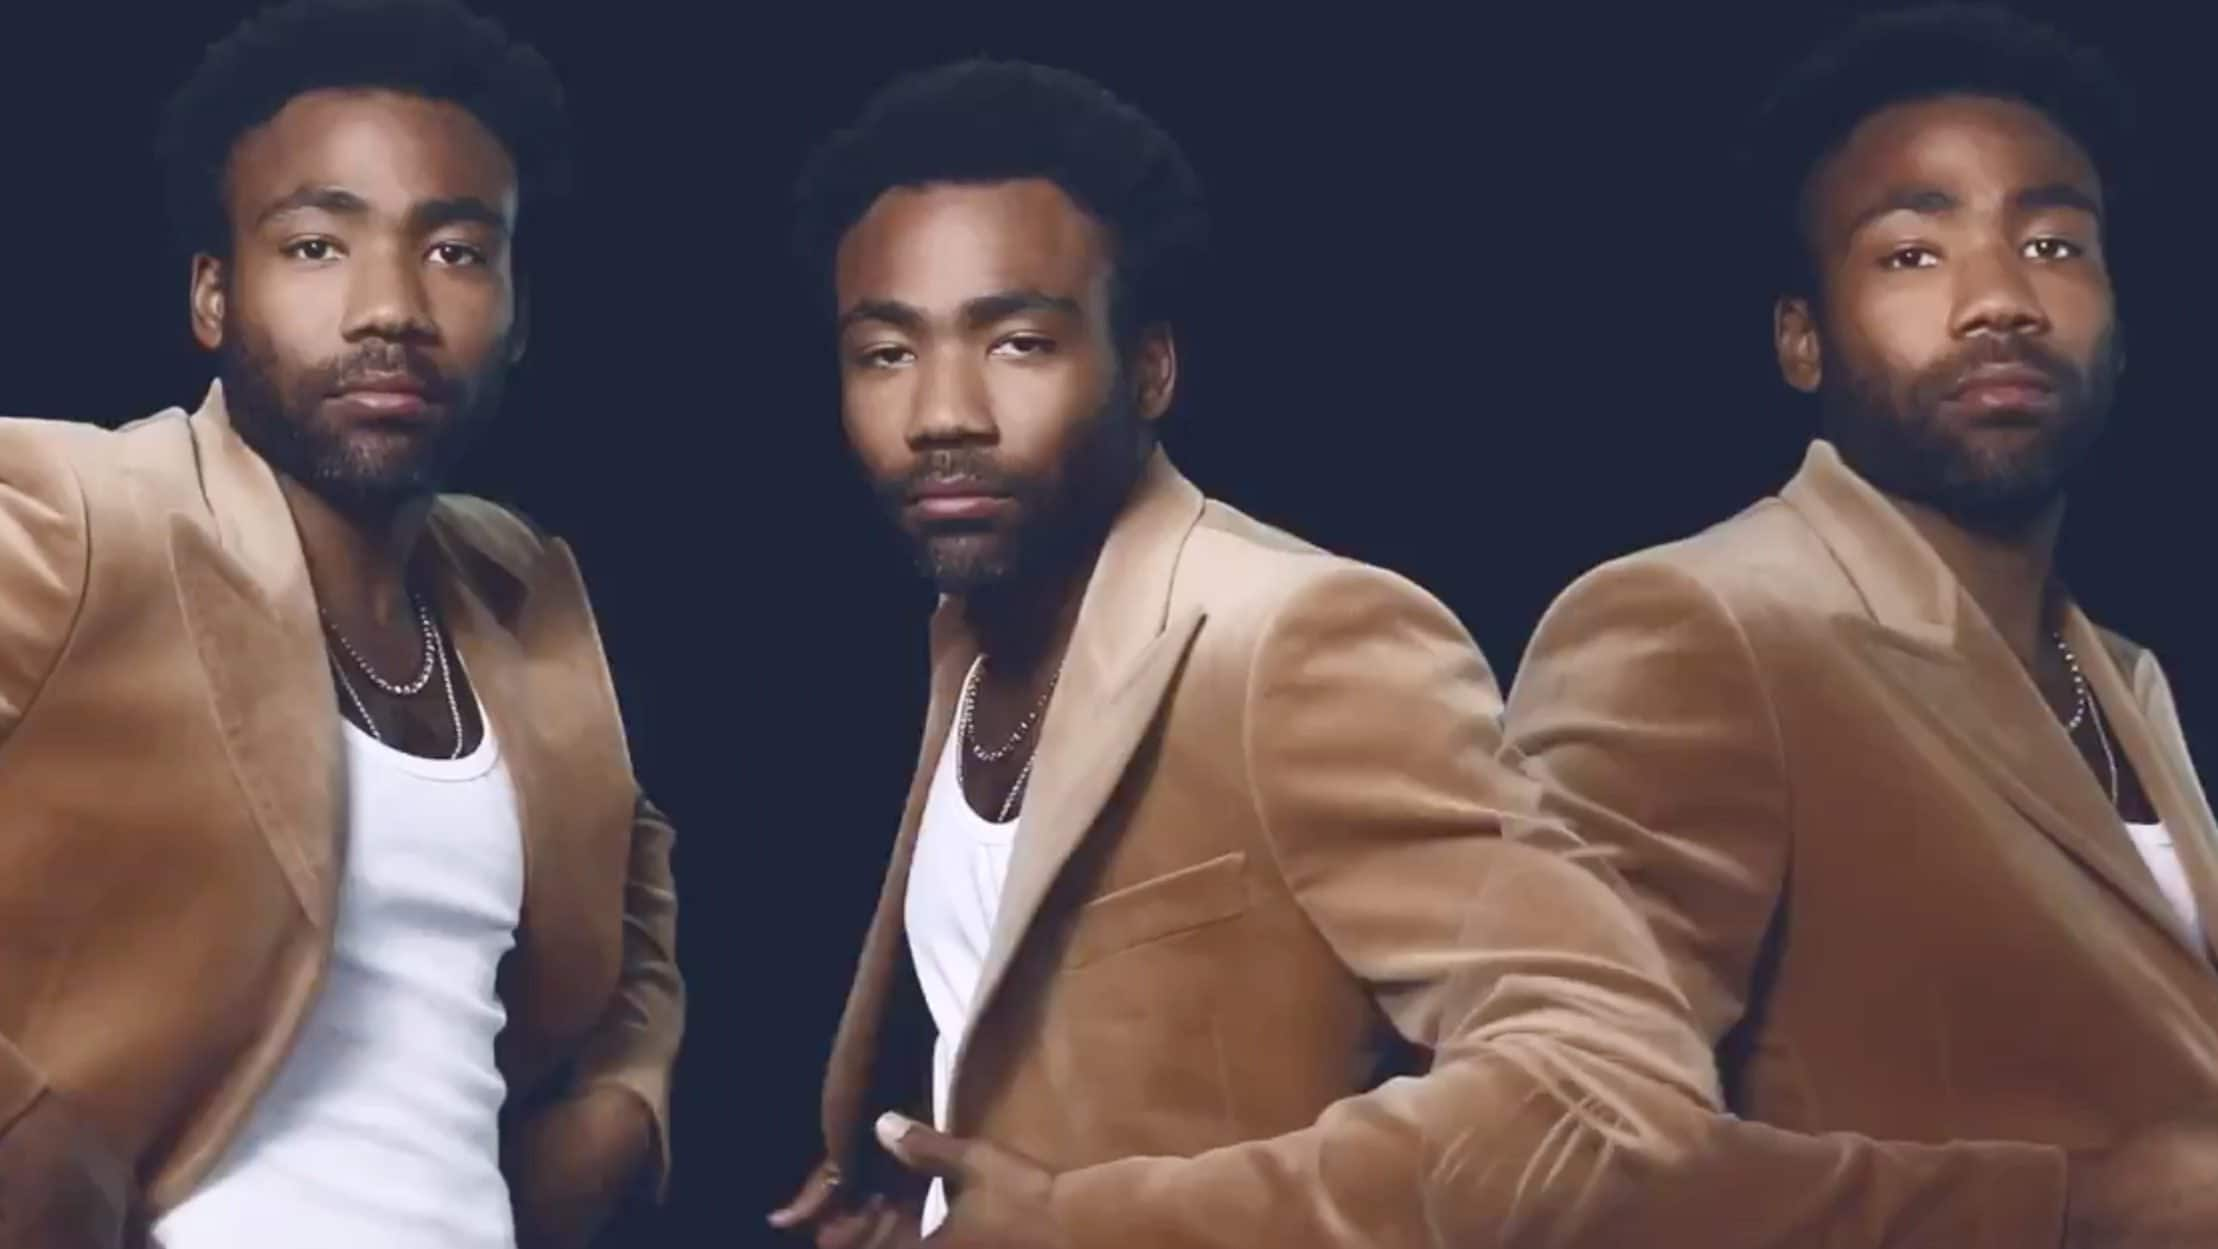 That's Not Trayvon Martin's Dad In Childish Gambino's